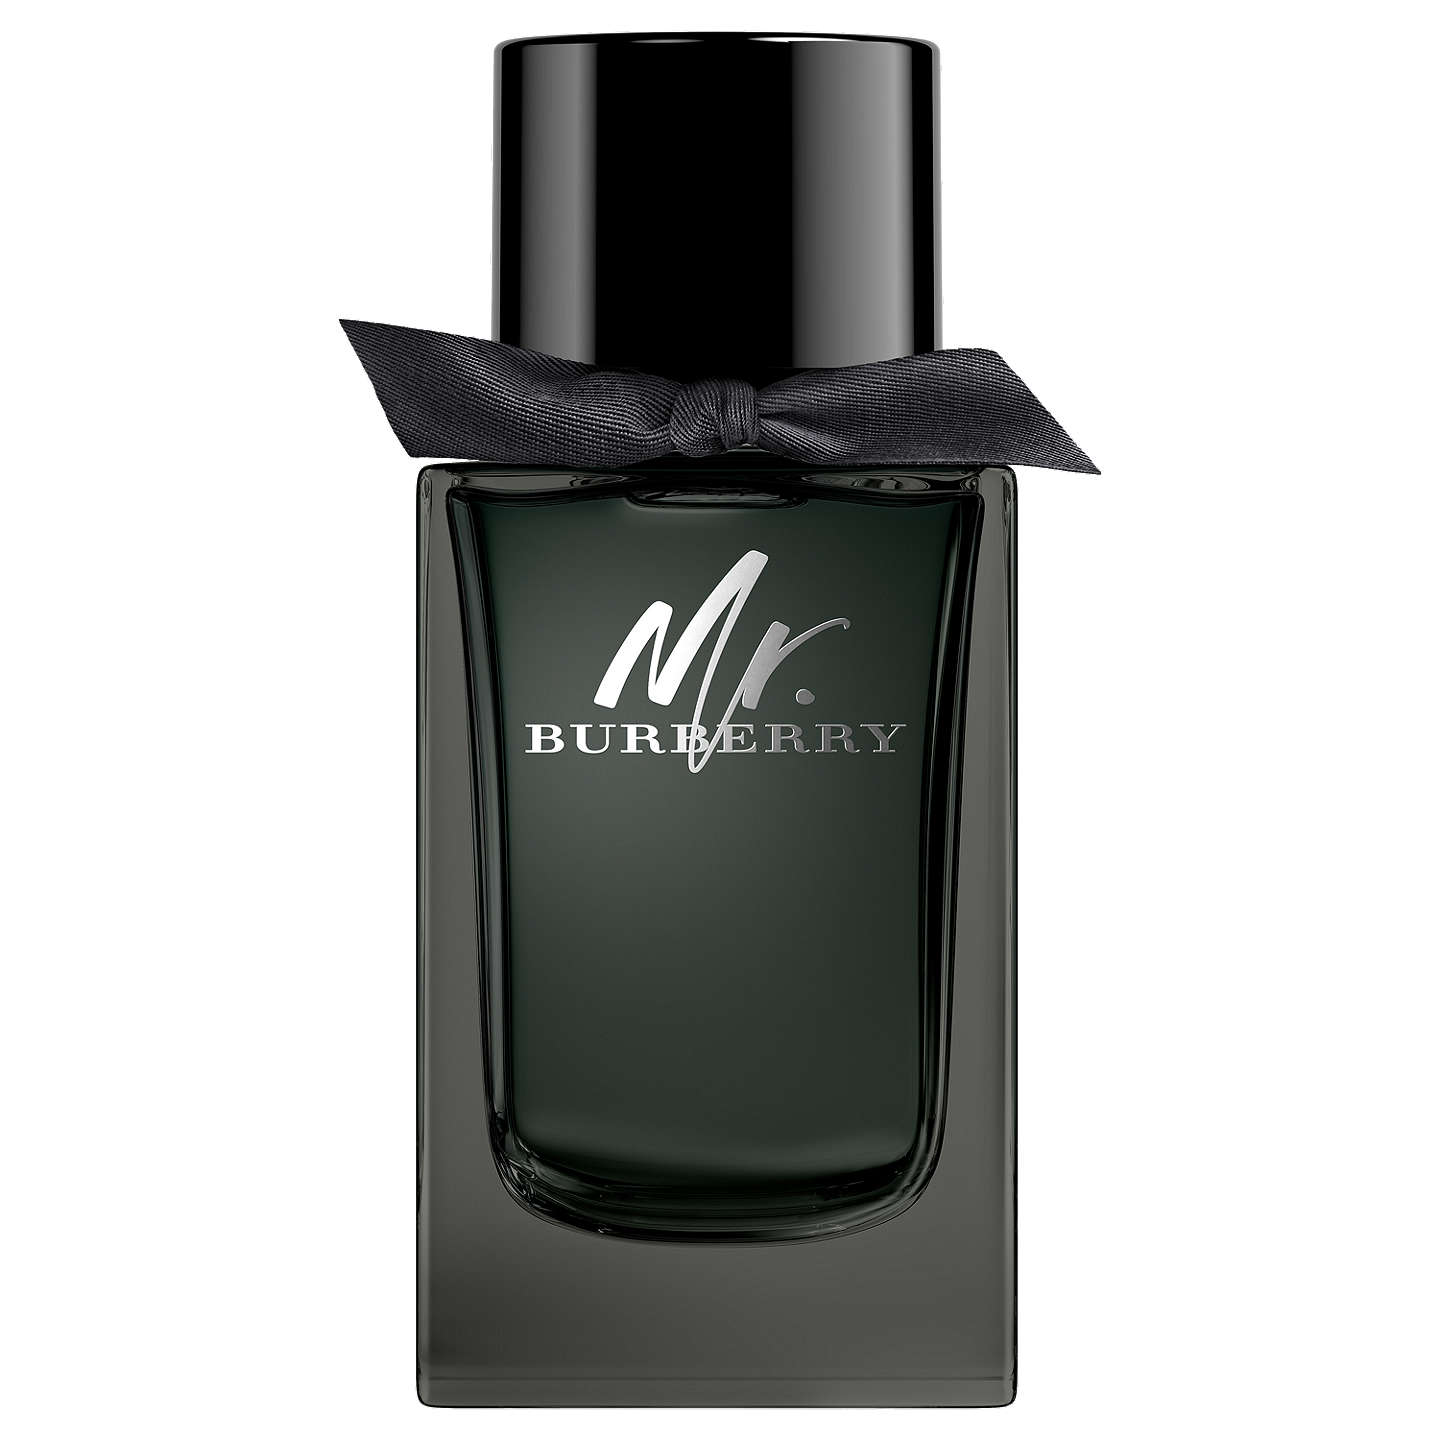 Burberry Mr. Burberry Eau de Parfum at John Lewis